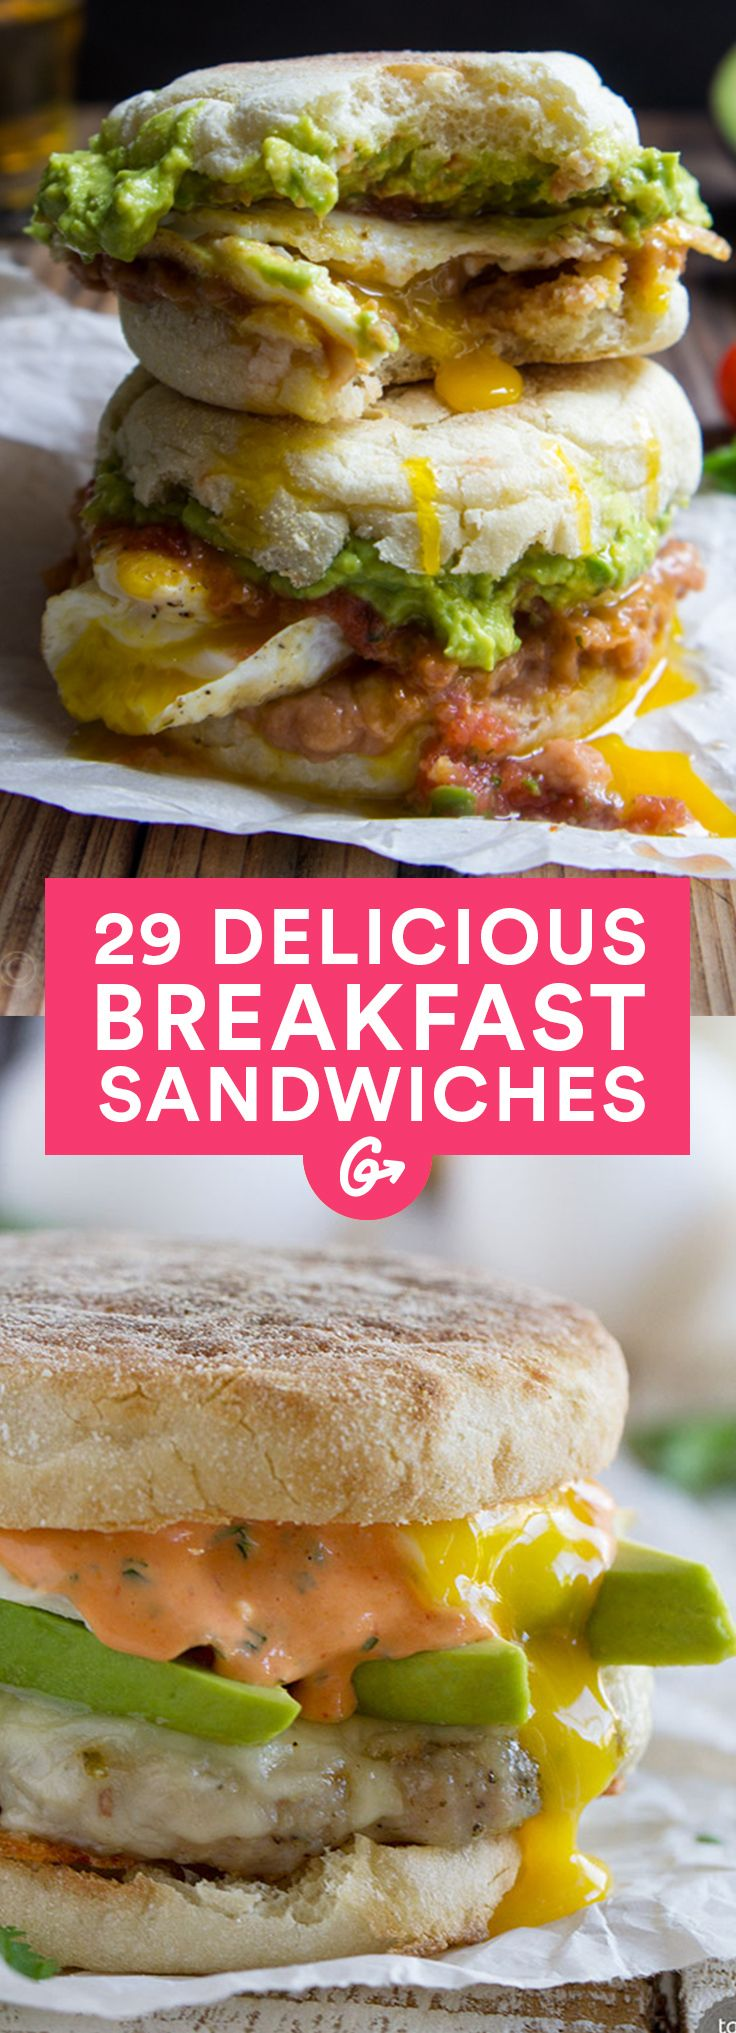 These recipes are just the thing for a morning meal that fuels your day and fits in your hands. #breakfast #sandwich #recipes http://greatist.com/eat/healthy-breakfast-sandwich-recipes